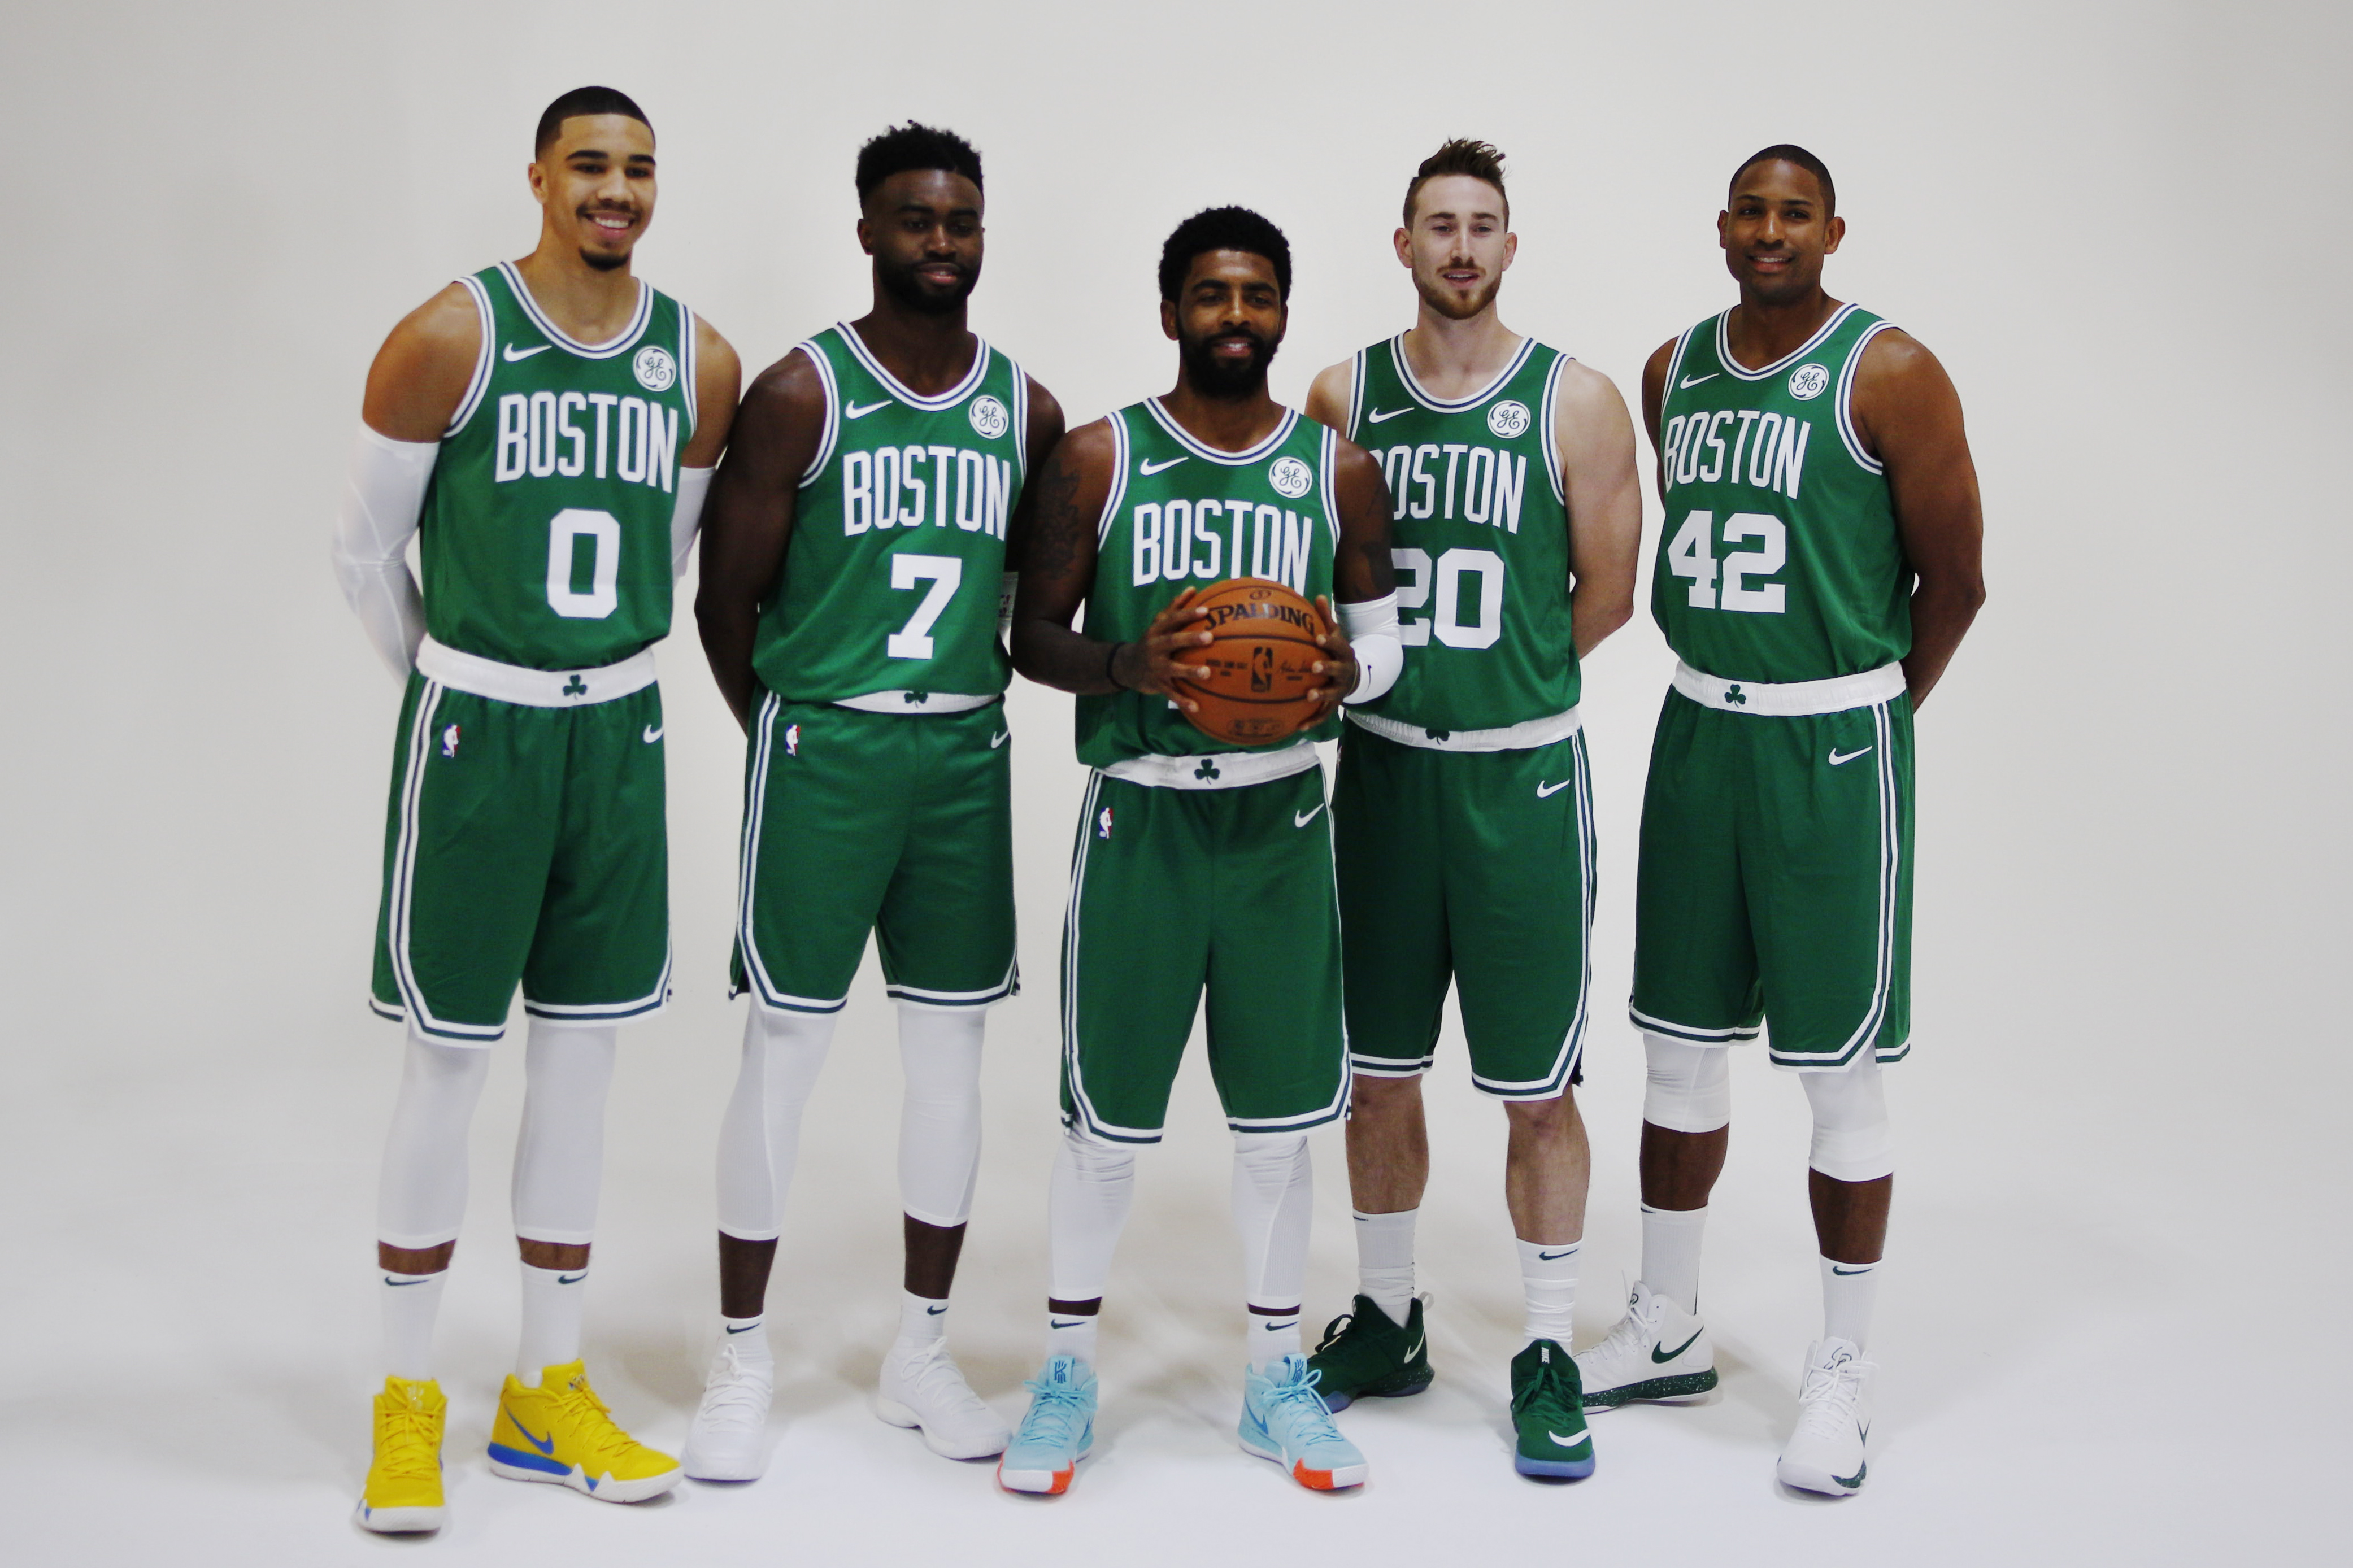 b2dc386e9e4 What the Celtics had to say during media day - The Boston Globe